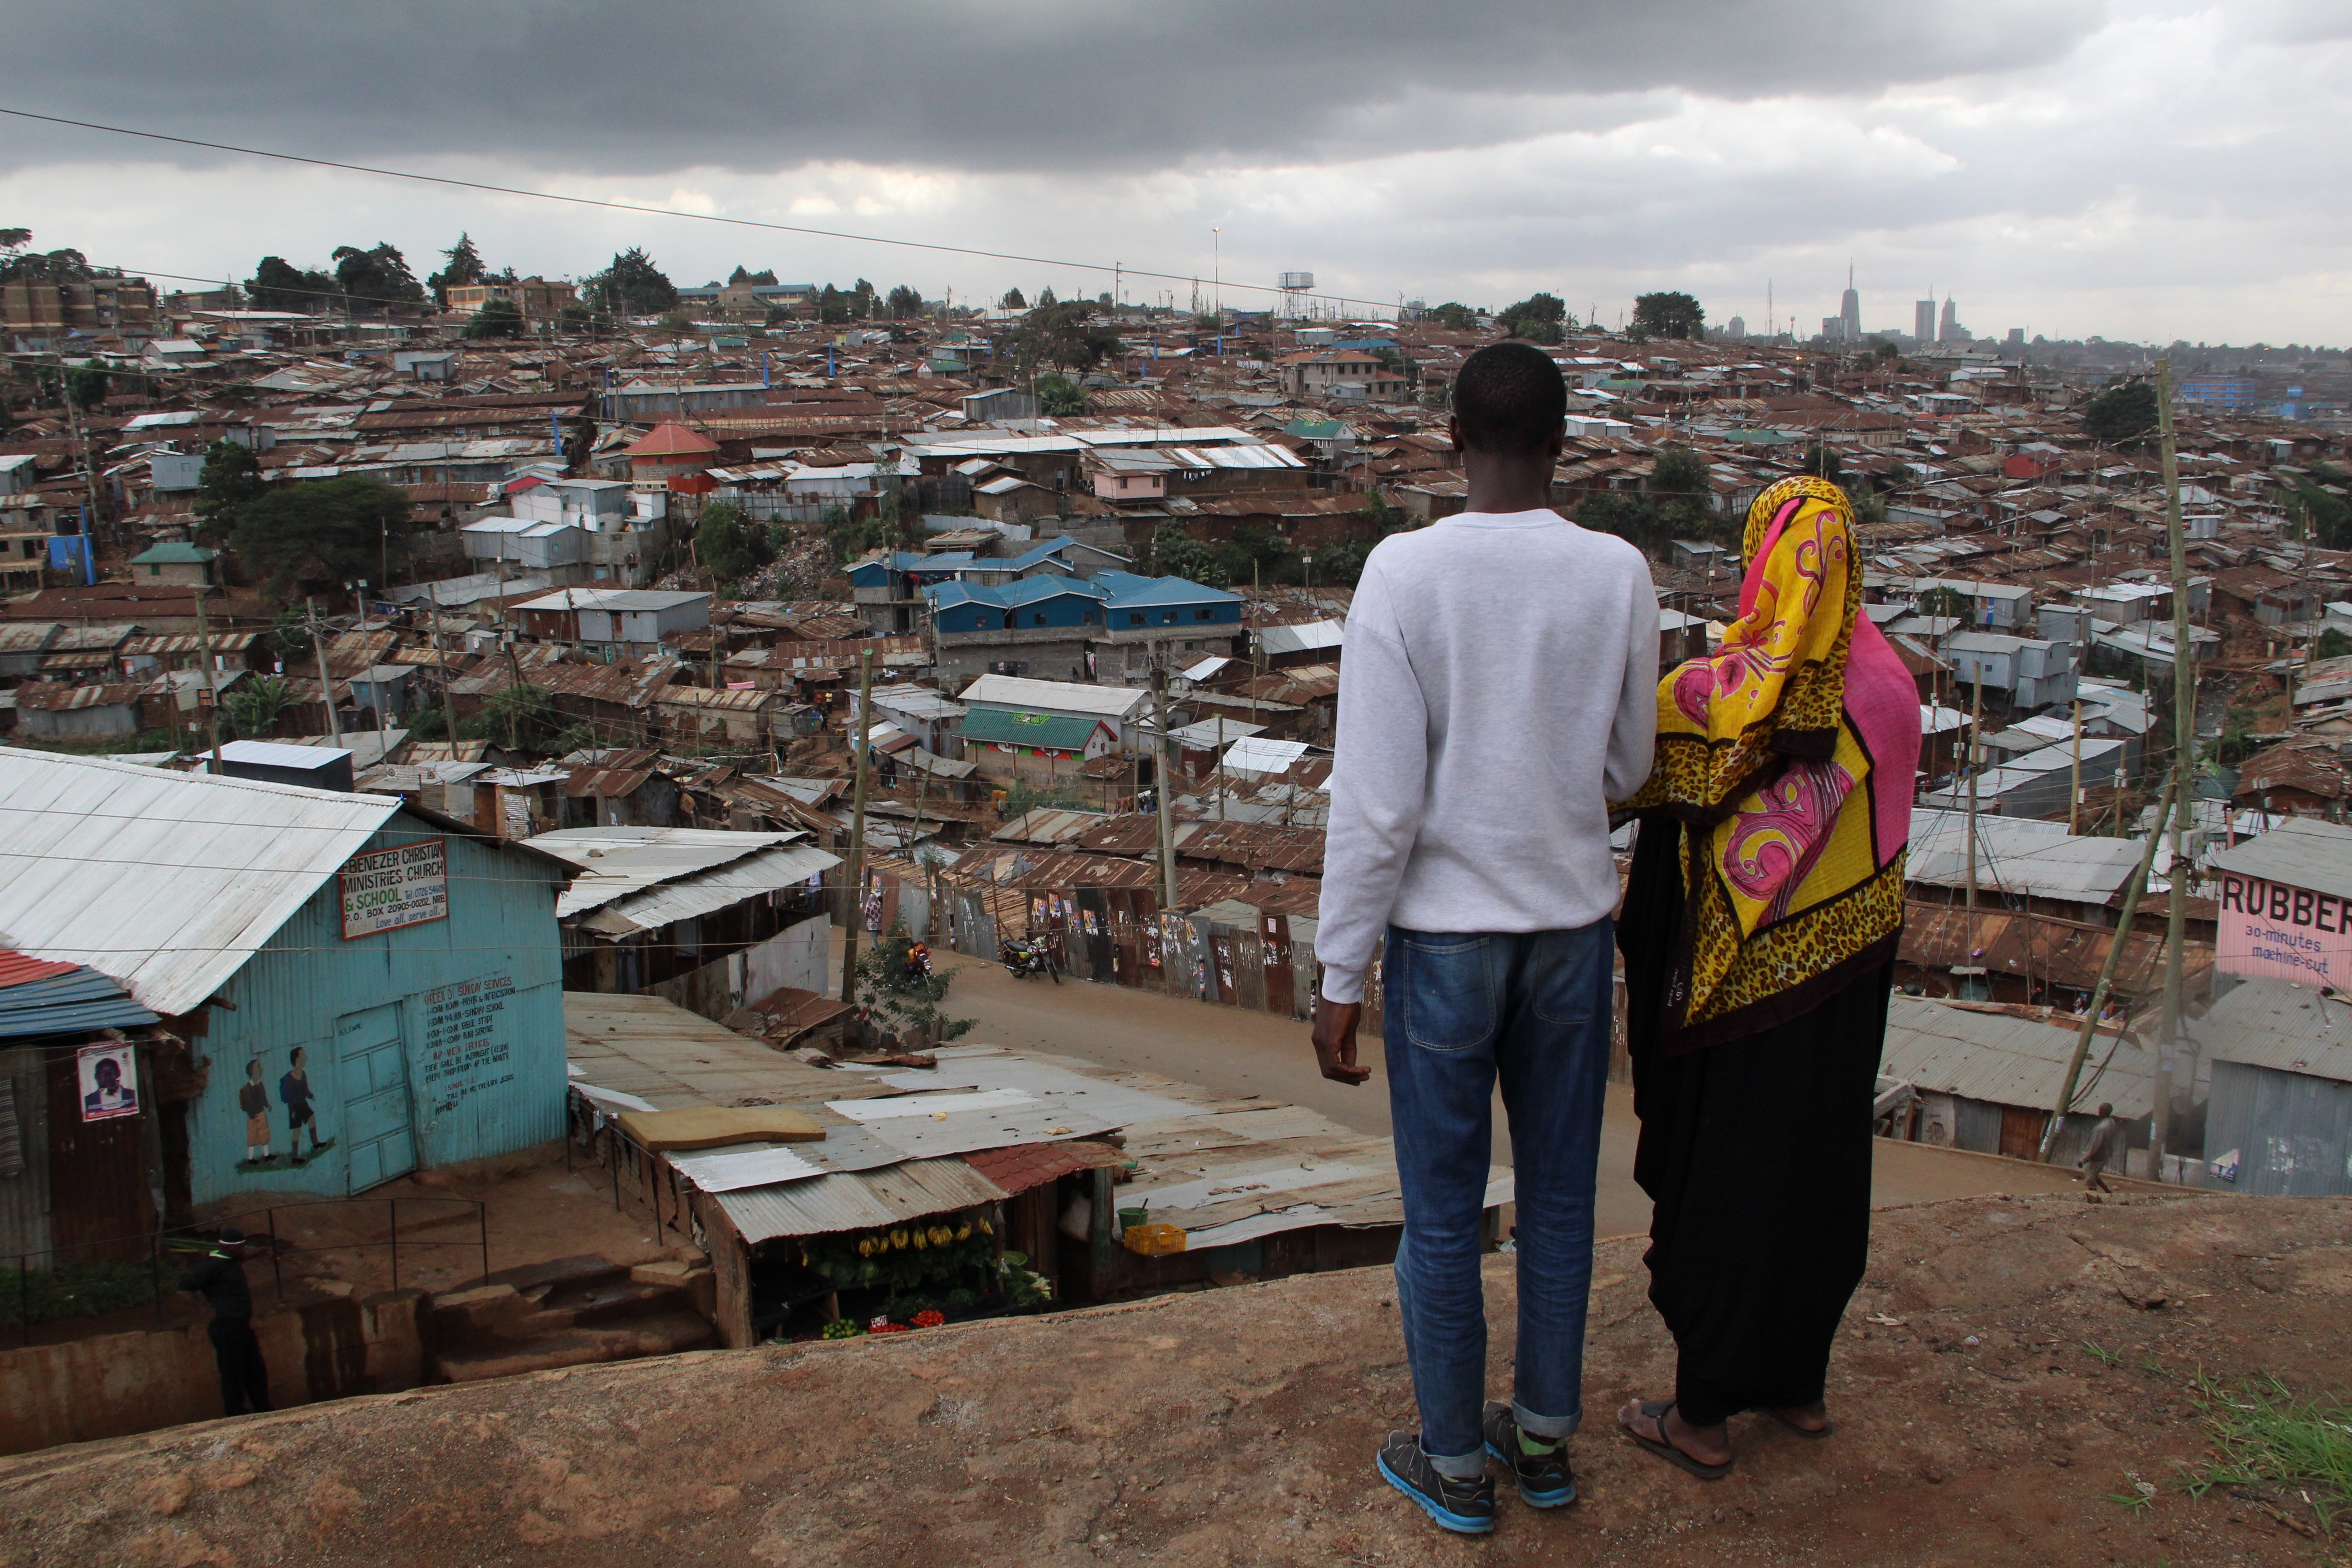 Ben and Salma are Kenyan students studying journalism at the Nairobi community news hub, Habari Kibra. They are looking out over their home town, Kibera, one of the largest slums in the world.